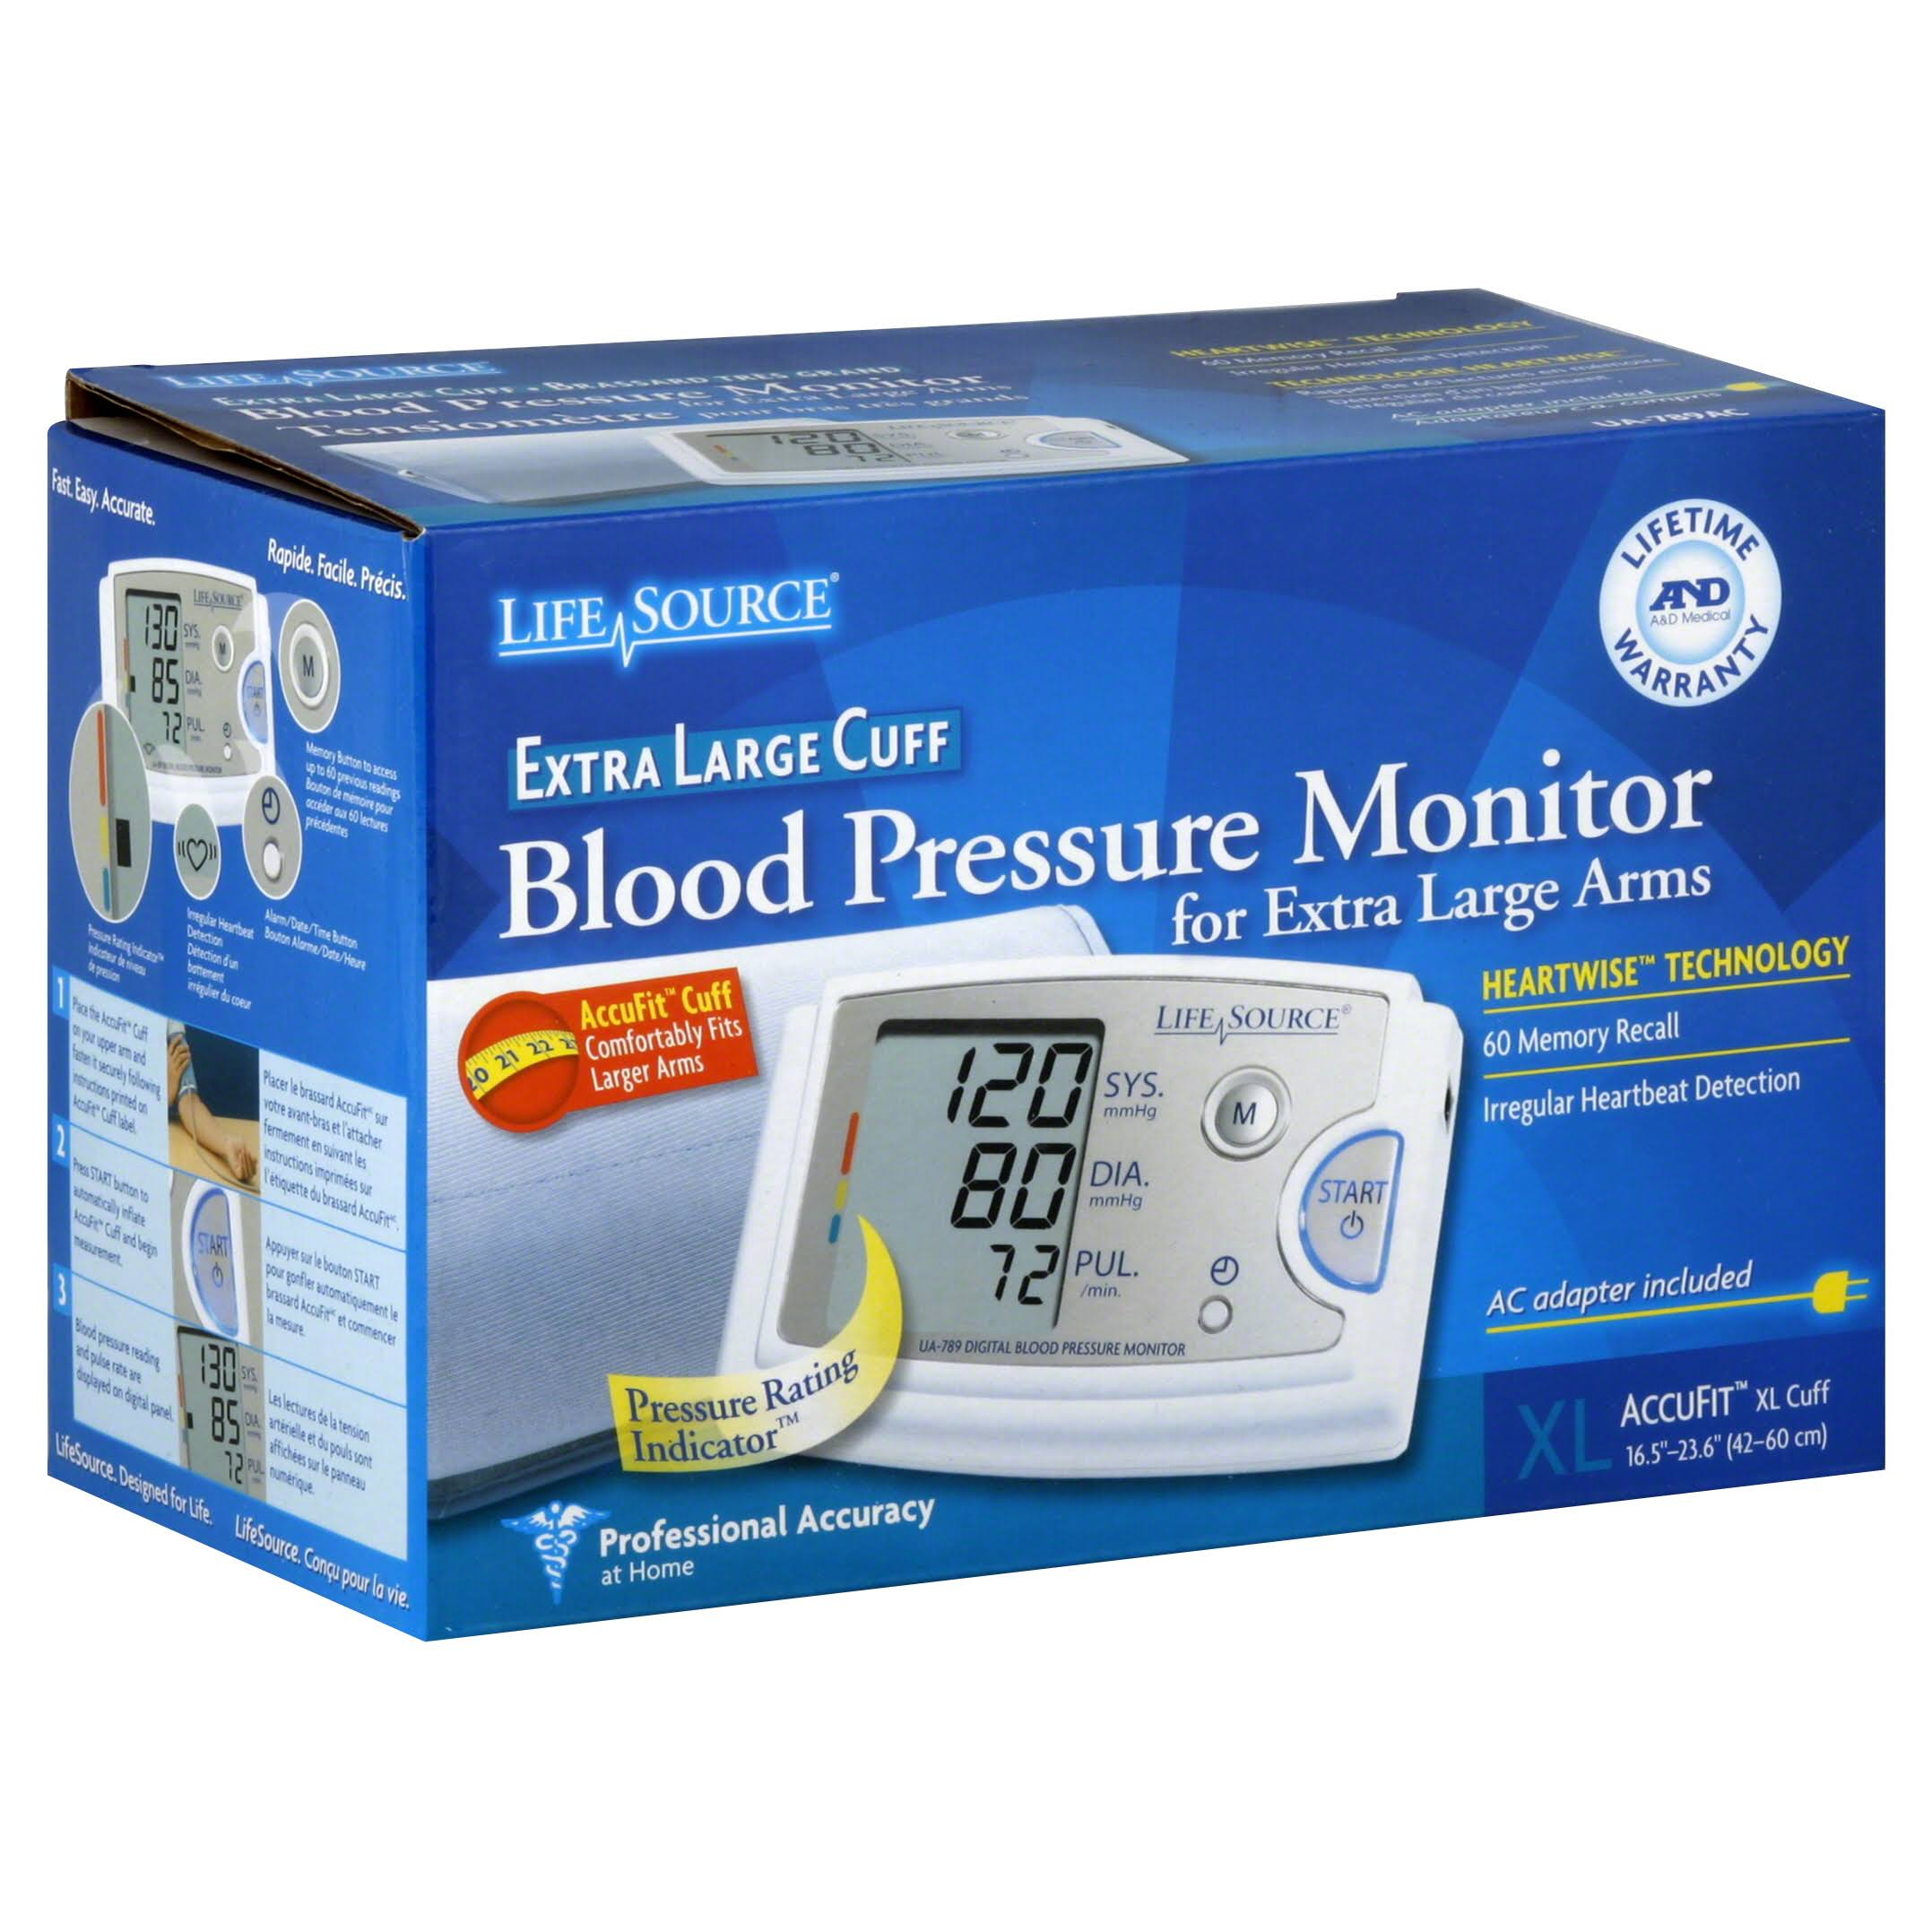 LifeSource Pro Blood Pressure Monitor with X-Large Cuff